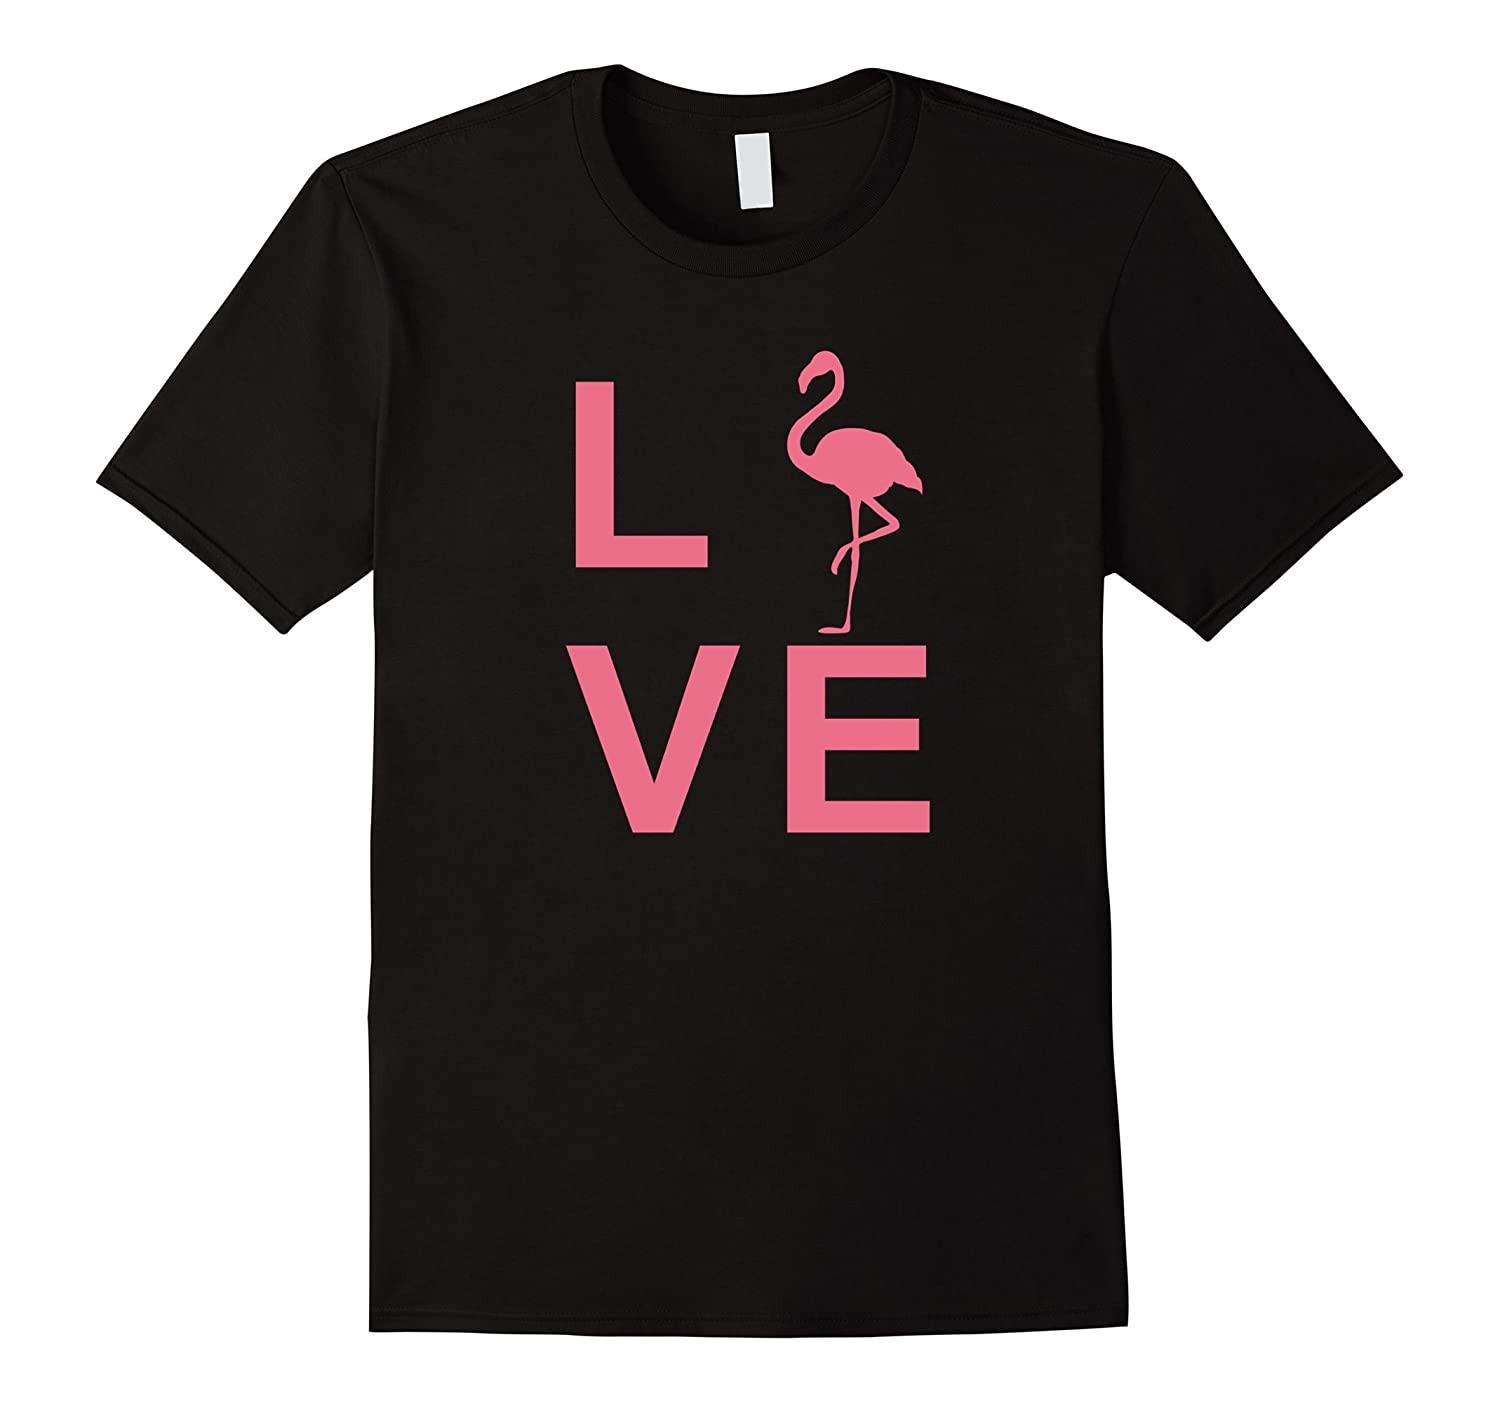 45ee79dff Imported Machine wash cold with like colors, dry low heat. Cute flamingo tee.  If you love summer, love birds, give zero flocks, or are majestically  awkward ...